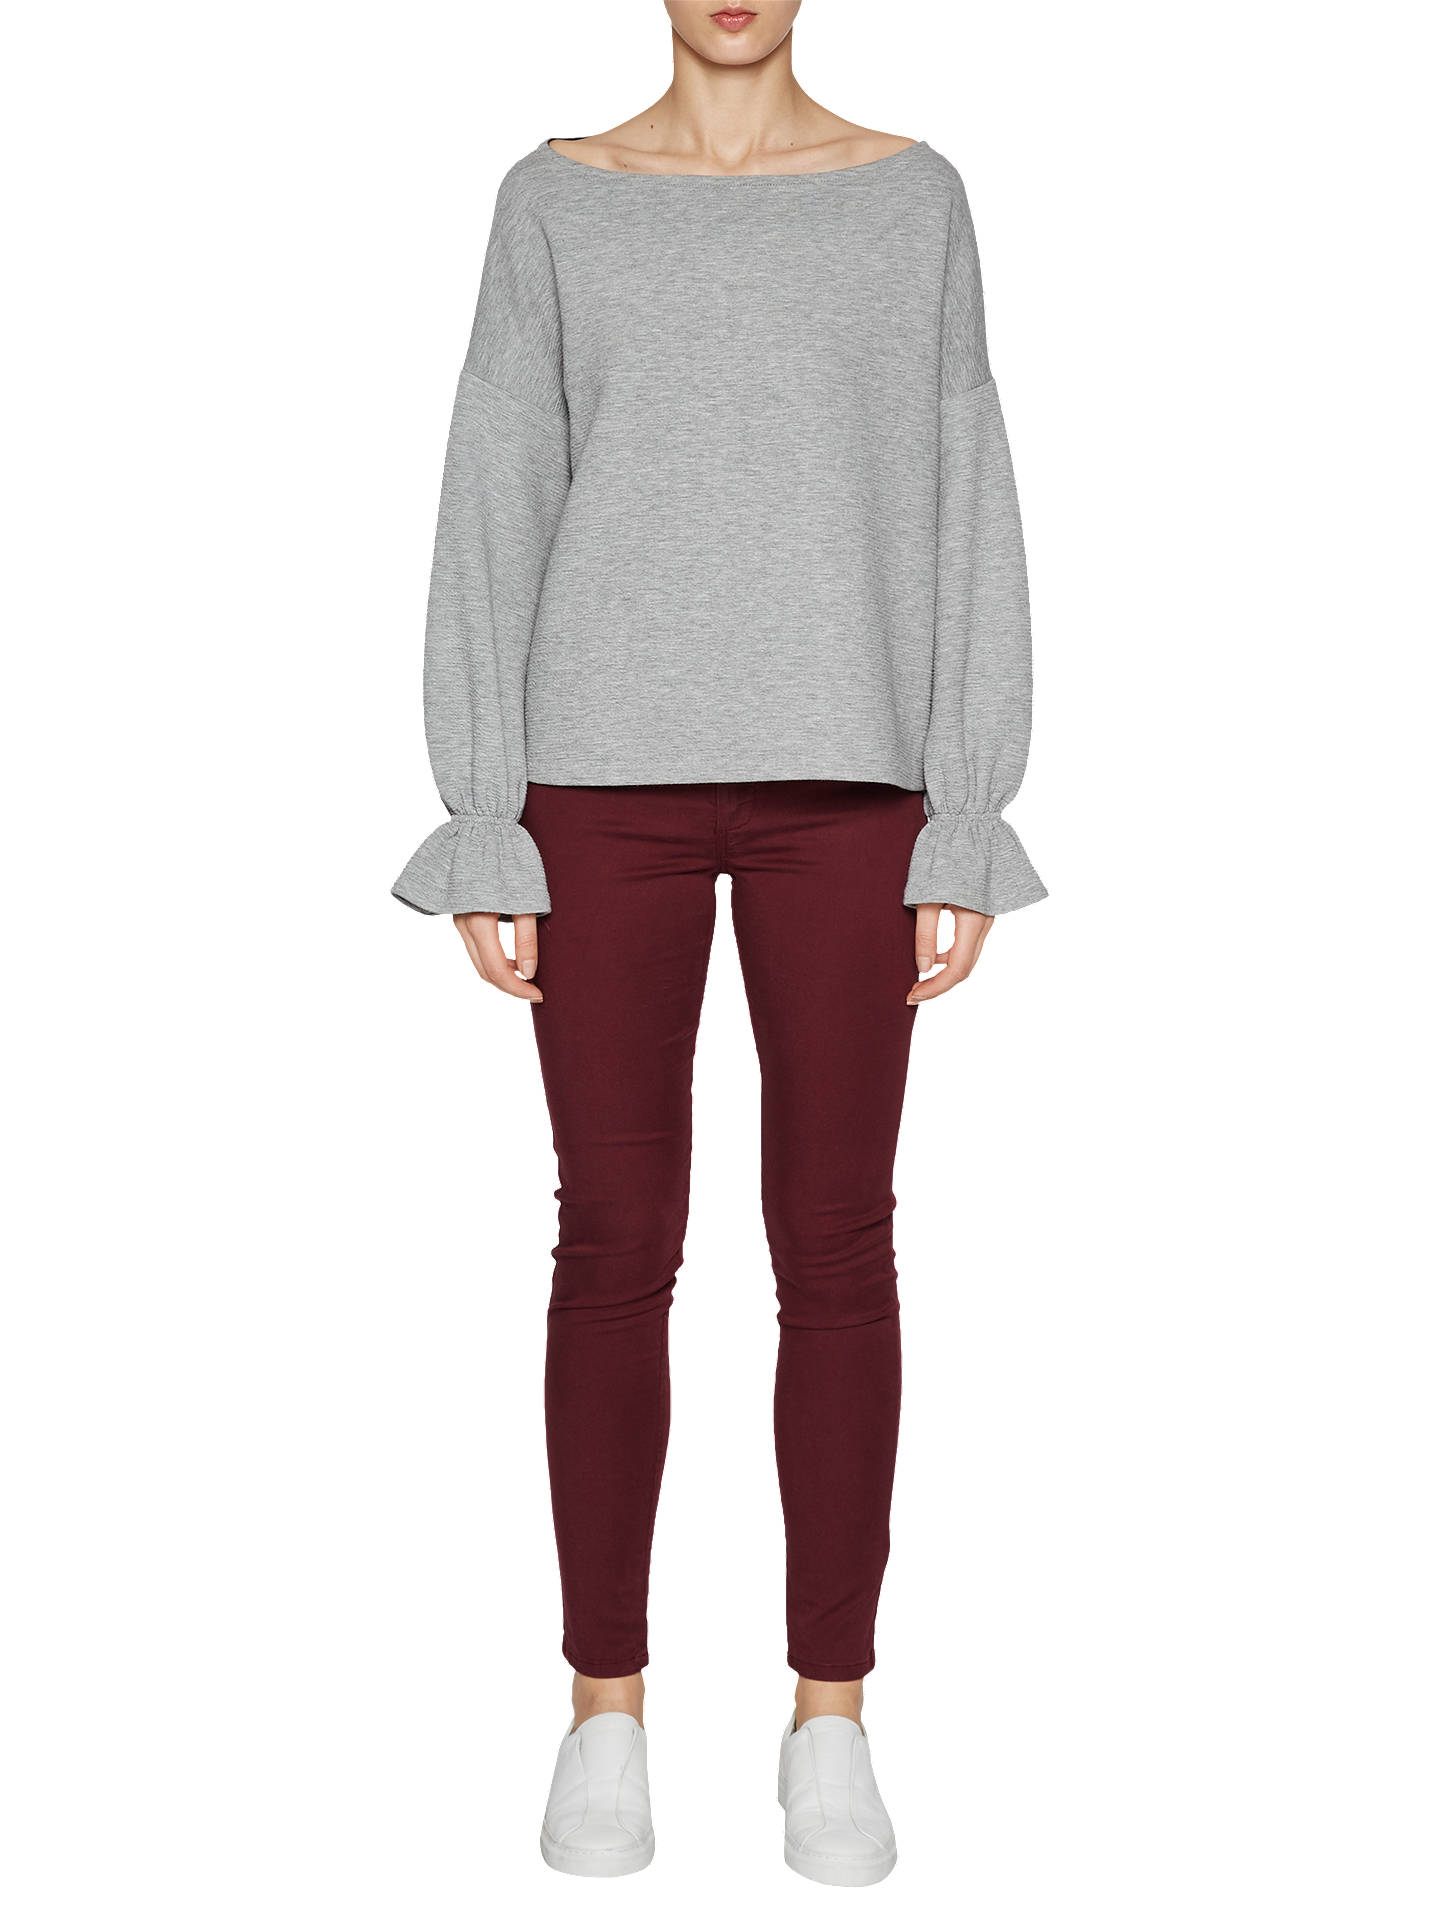 44e0d0ab270 Buy French Connection Ellen Textured Jumper, Grey, XS Online at johnlewis.com  ...